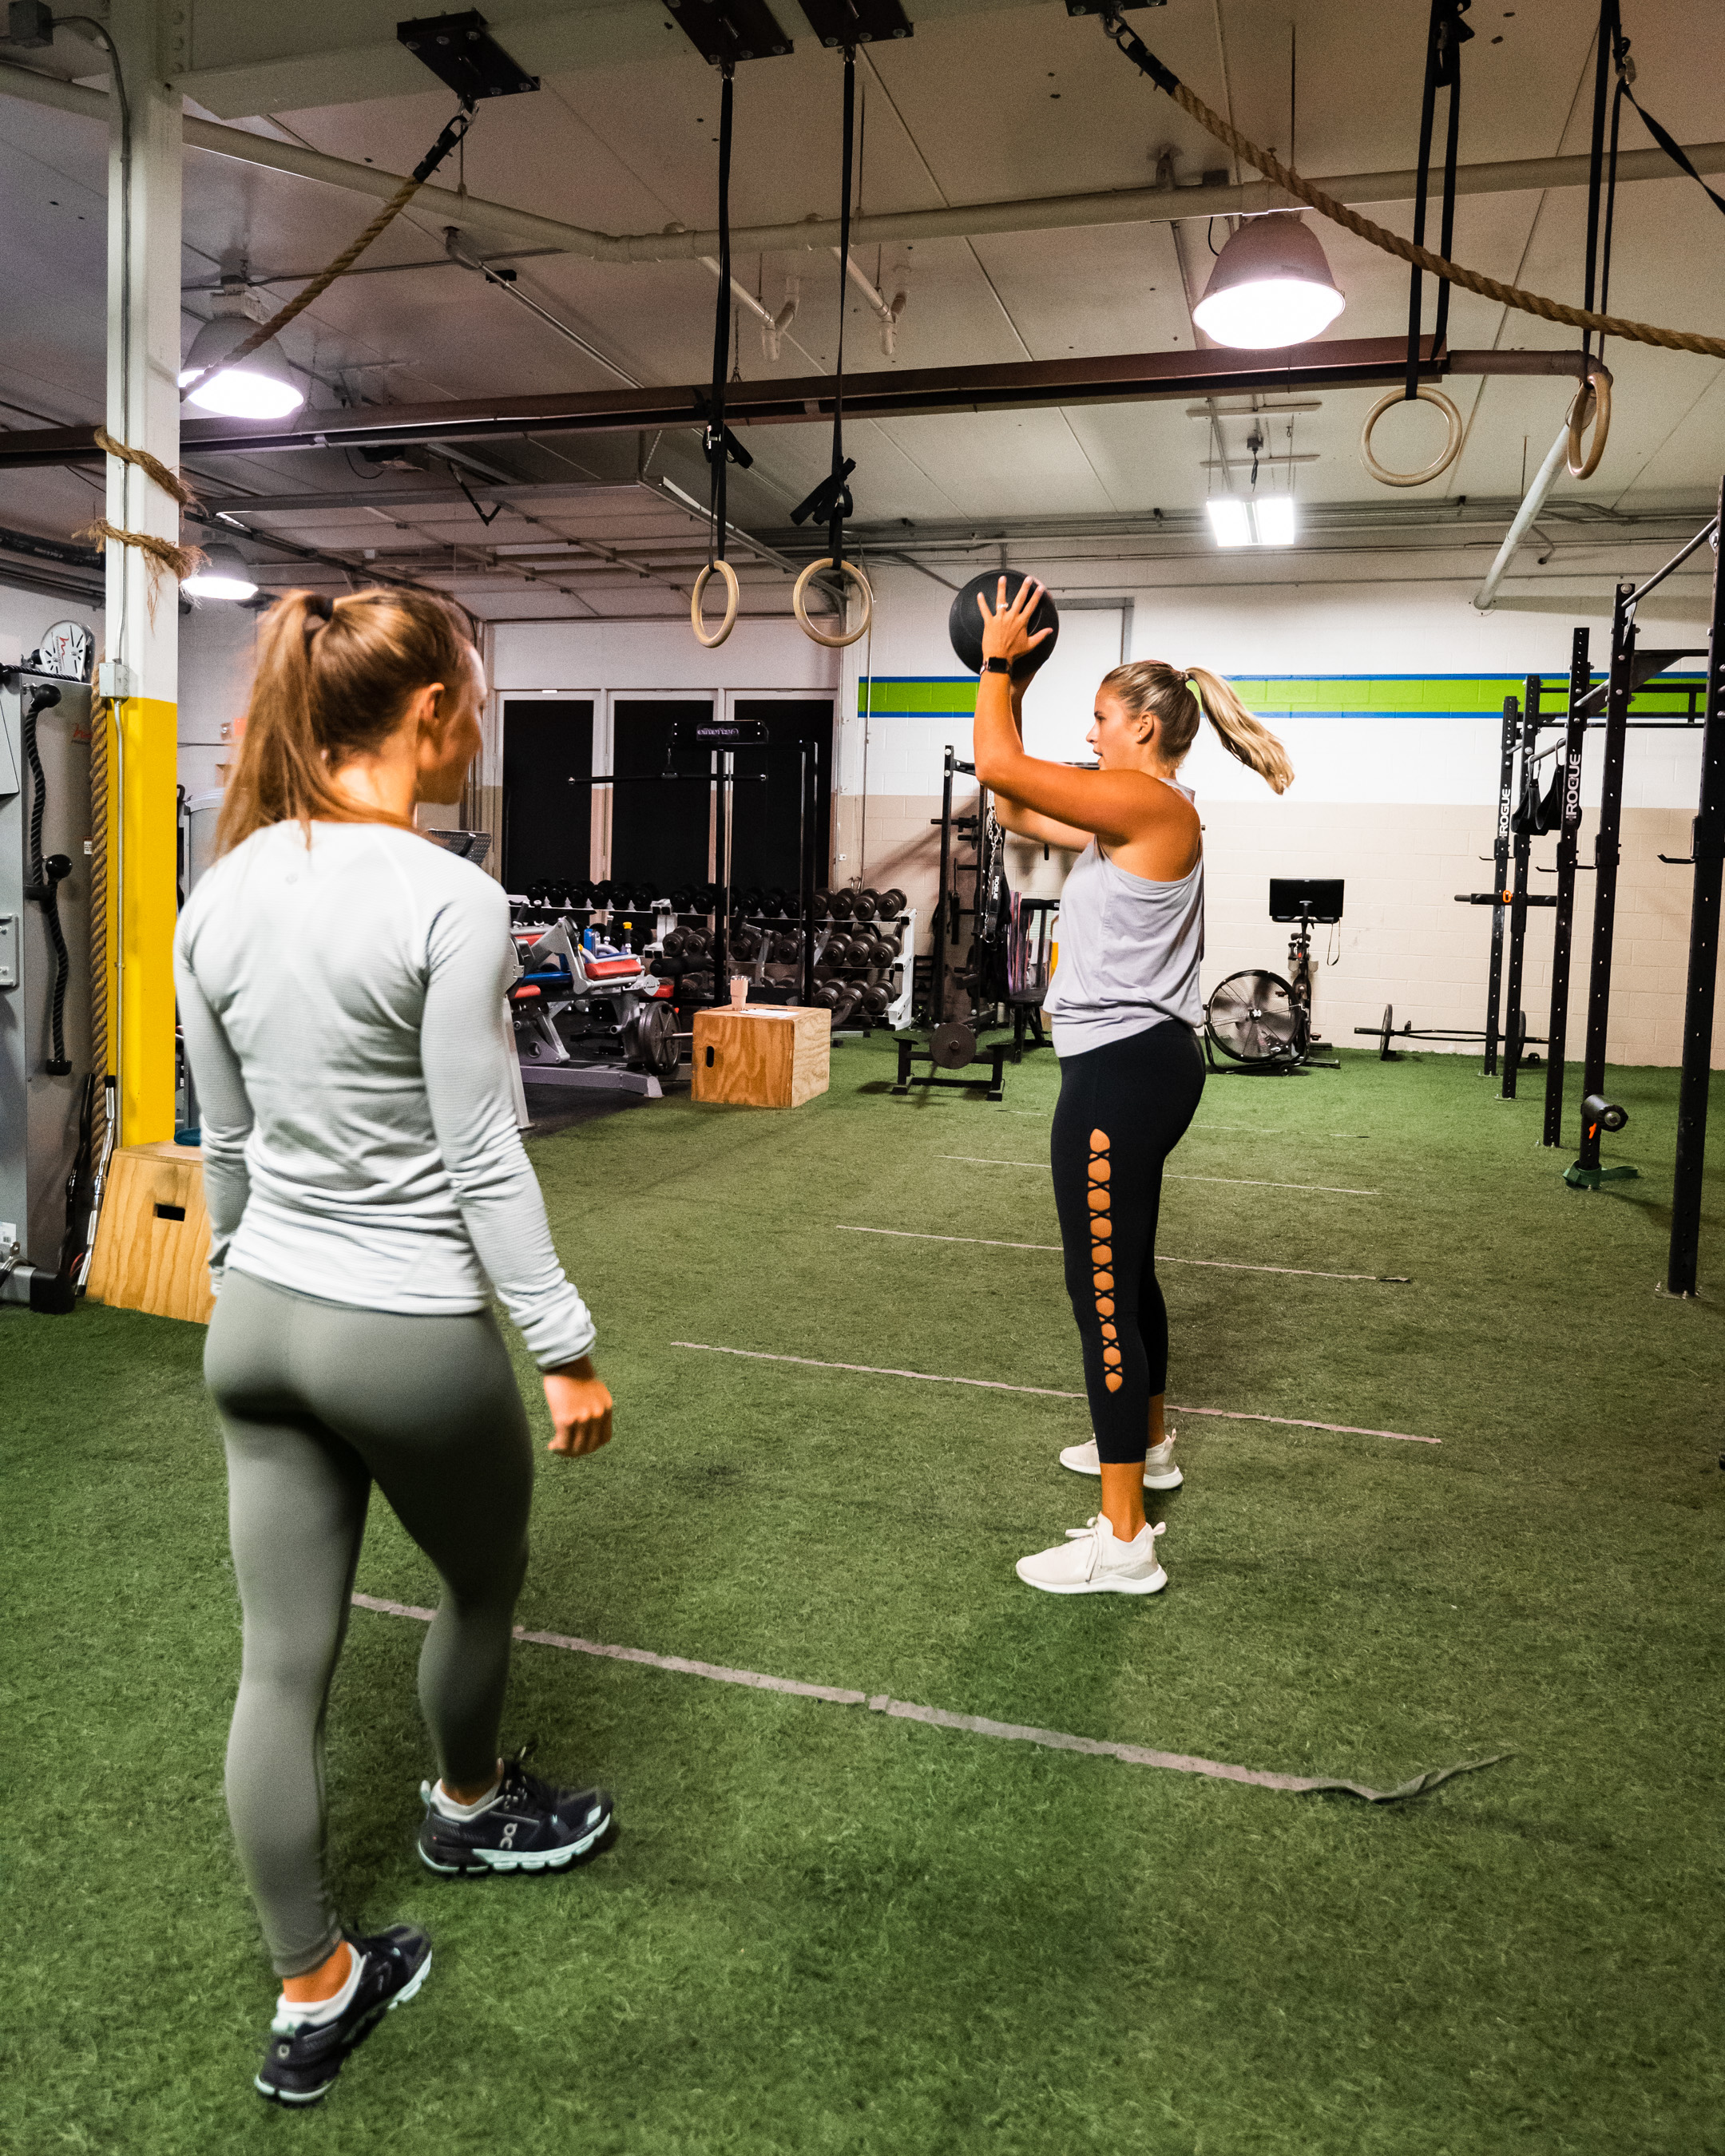 Private training at Prevail Grand Rapids personal training and gym located in Ada, Michigan.